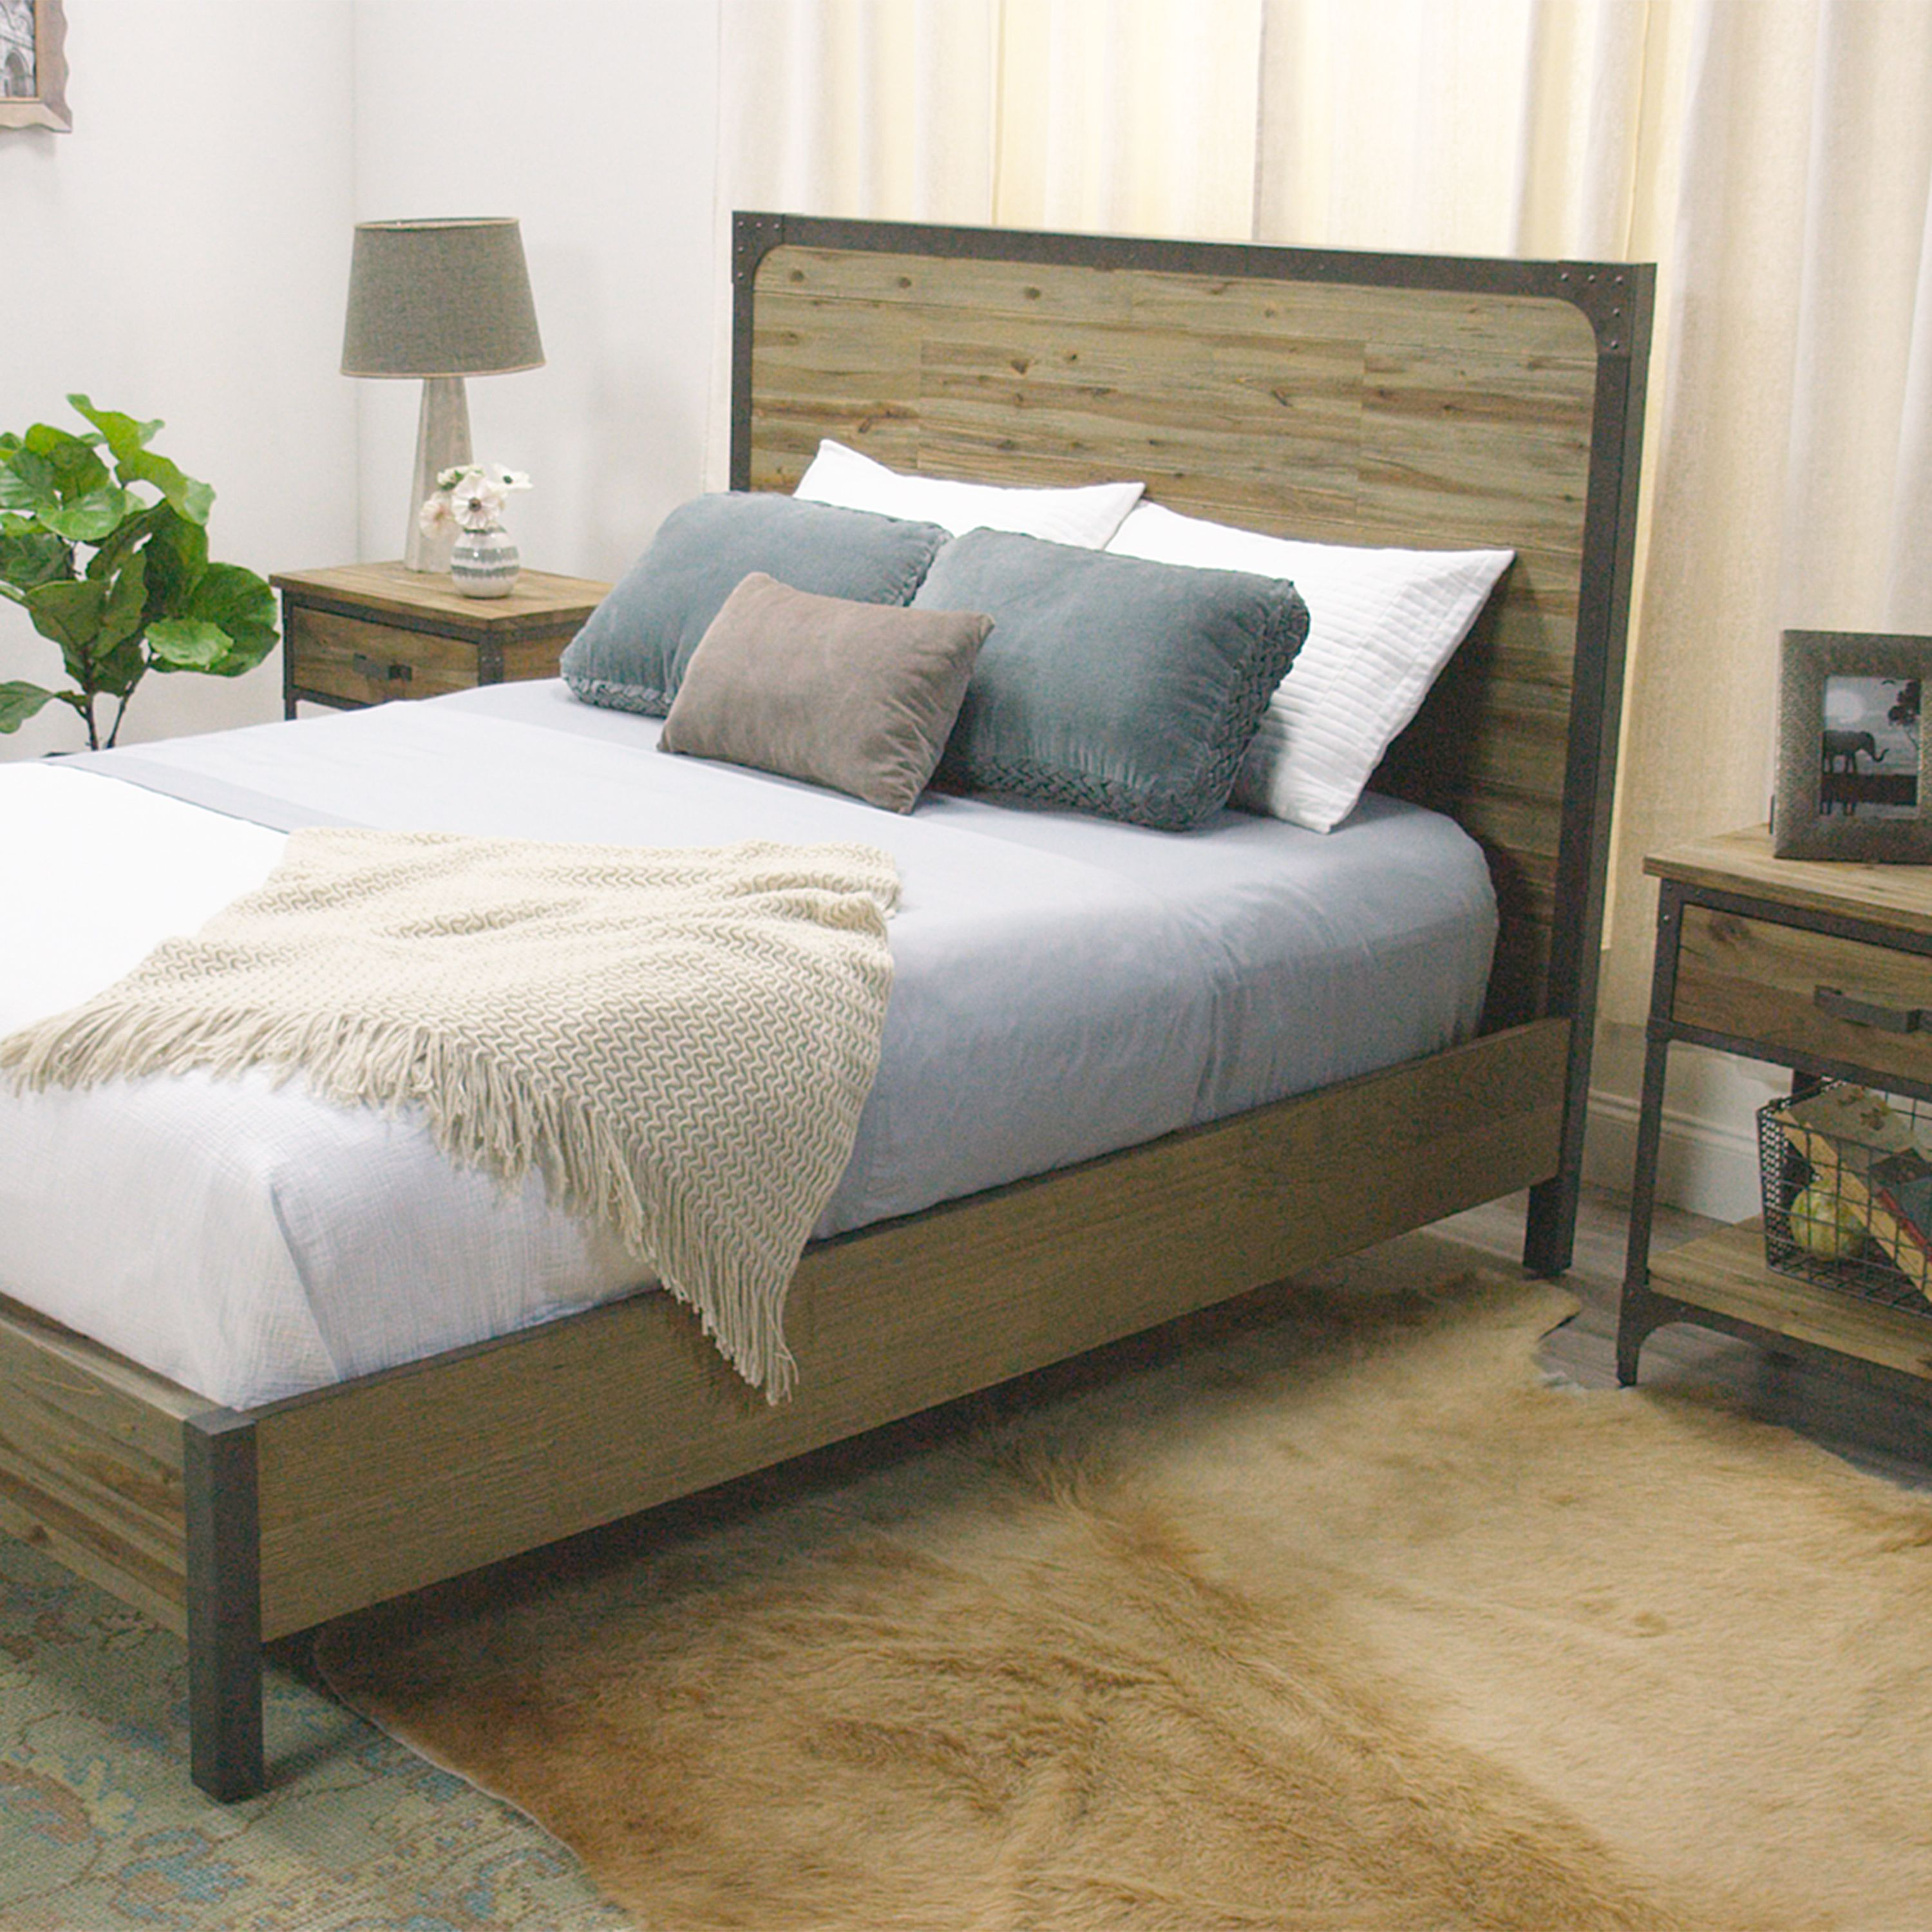 Combining Rustic Wood Construction With Metal Accents Our Bed Is